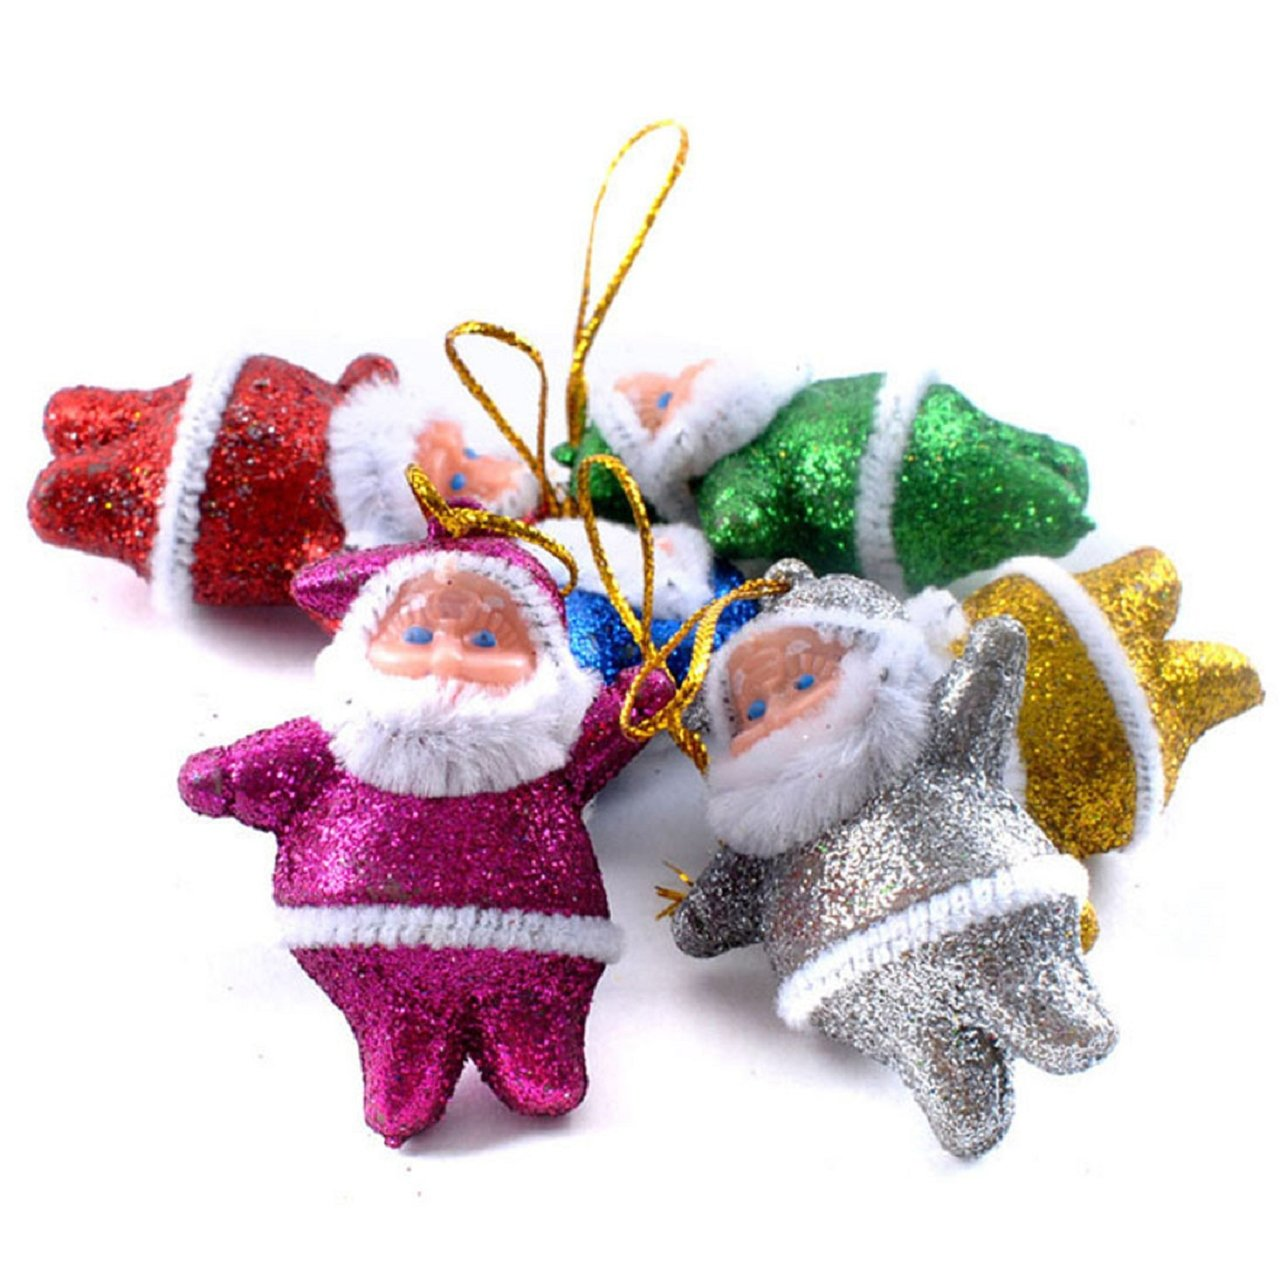 Sandistore 6PC Colorful Christmas Santa Claus Party Ornaments Xmas Tree Hanging Decoration